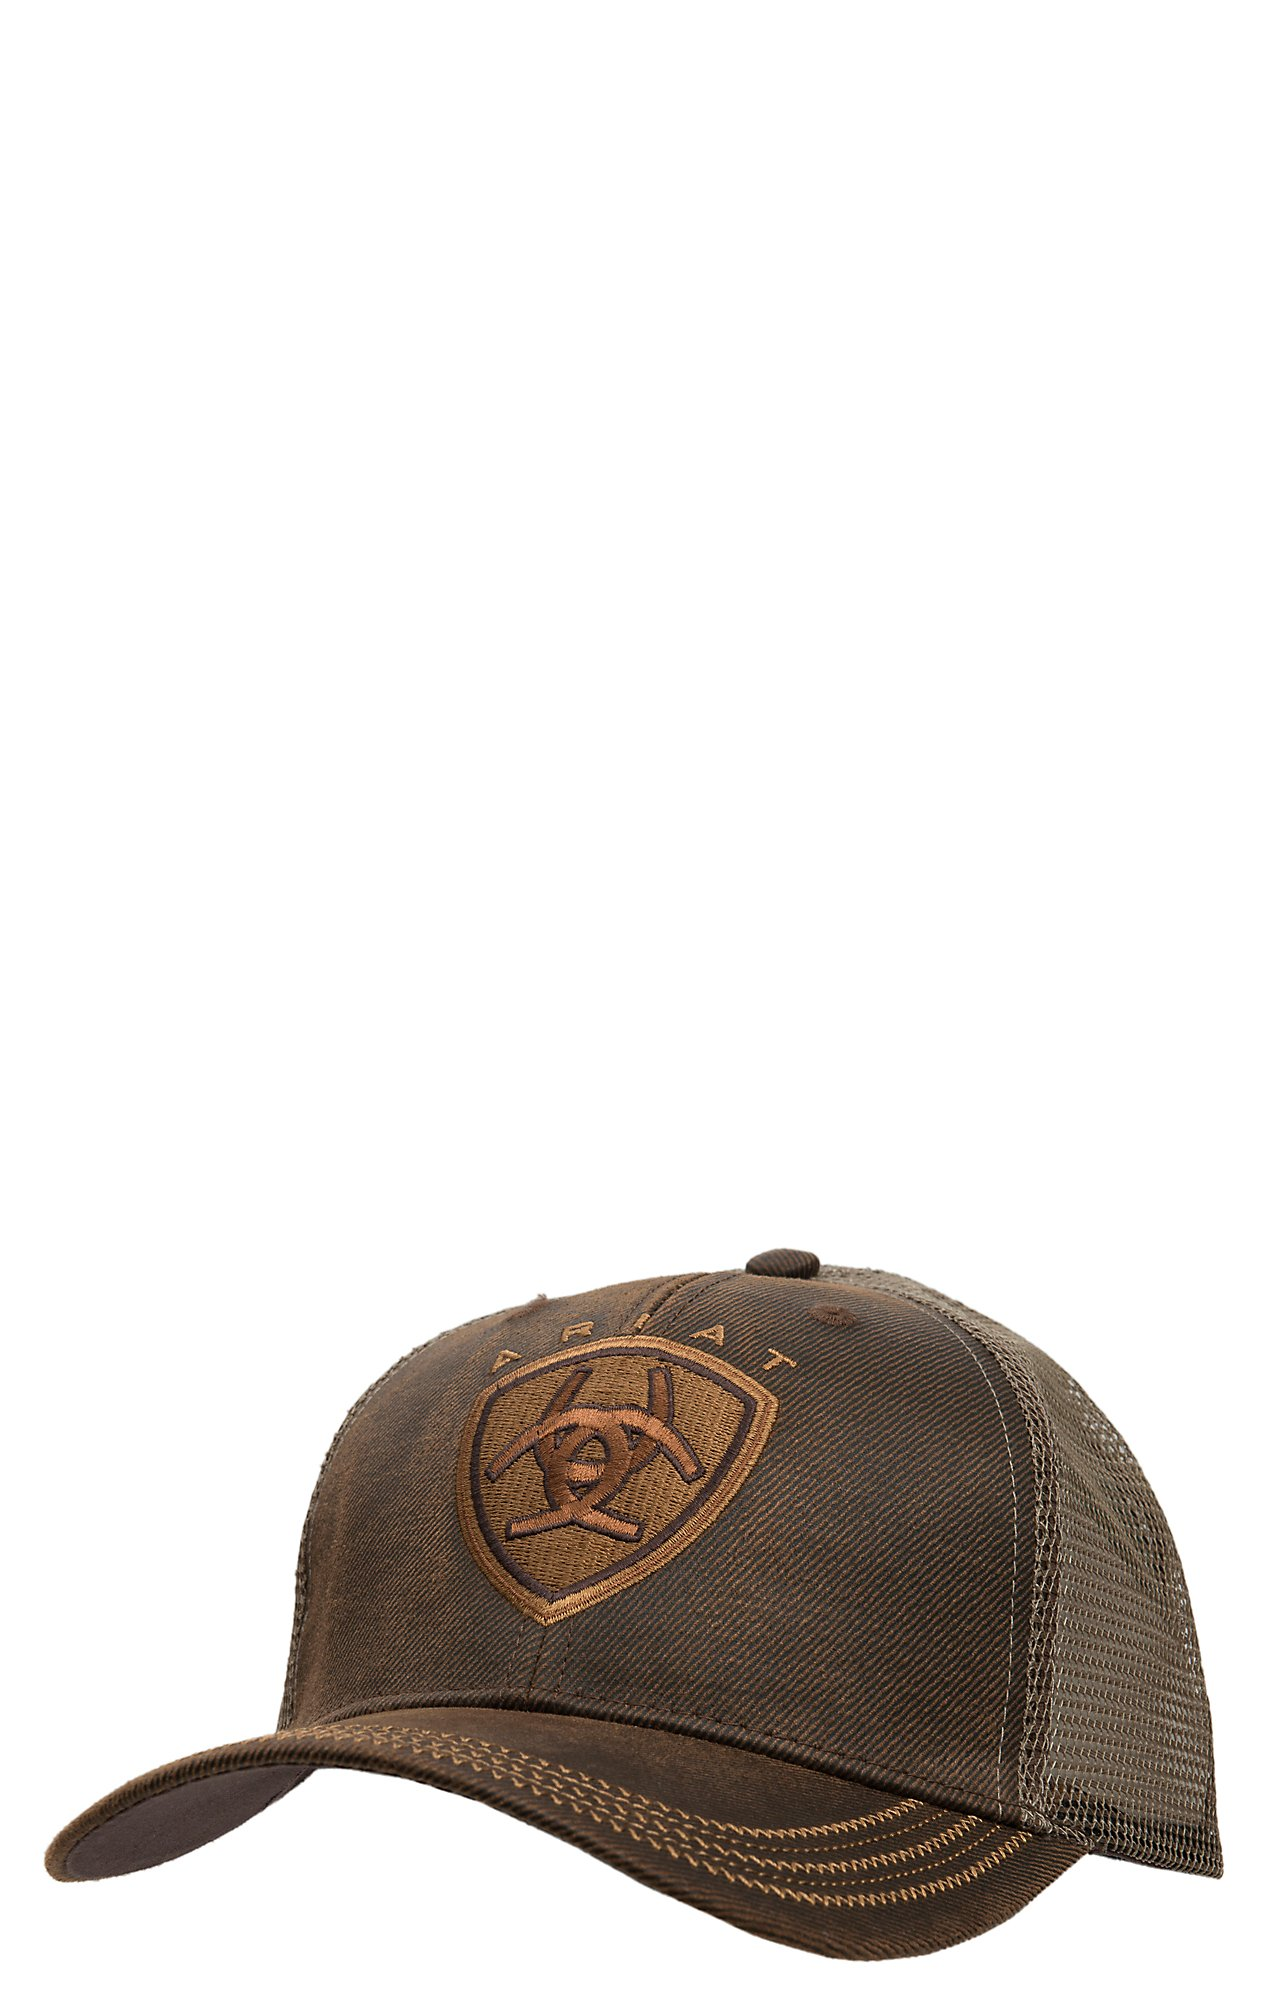 Ariat Brown Oilskin with Mesh Back Logo Velcro Back Cap d631a7398a50